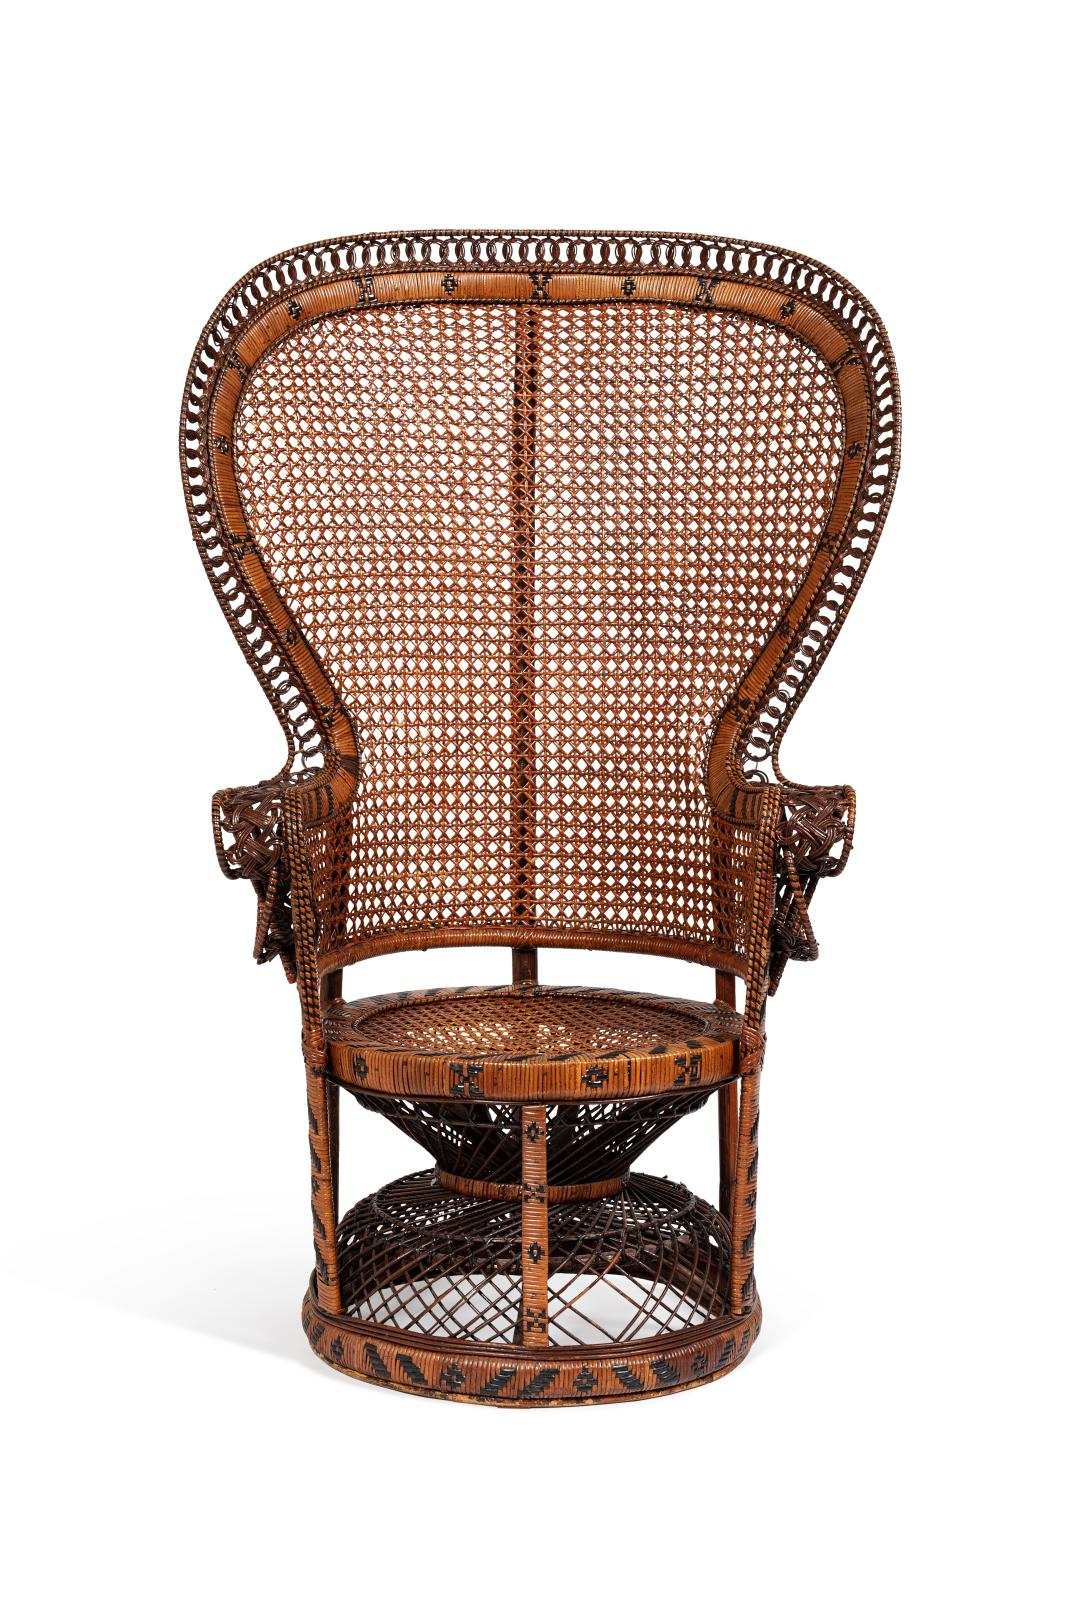 """€250 French, 20th century, """"Emmanuelle"""" armchair in stained and woven rattan, Pomaré model, fan-shaped back, 144 x 76 x 54 cm/56.69 x 29.9"""